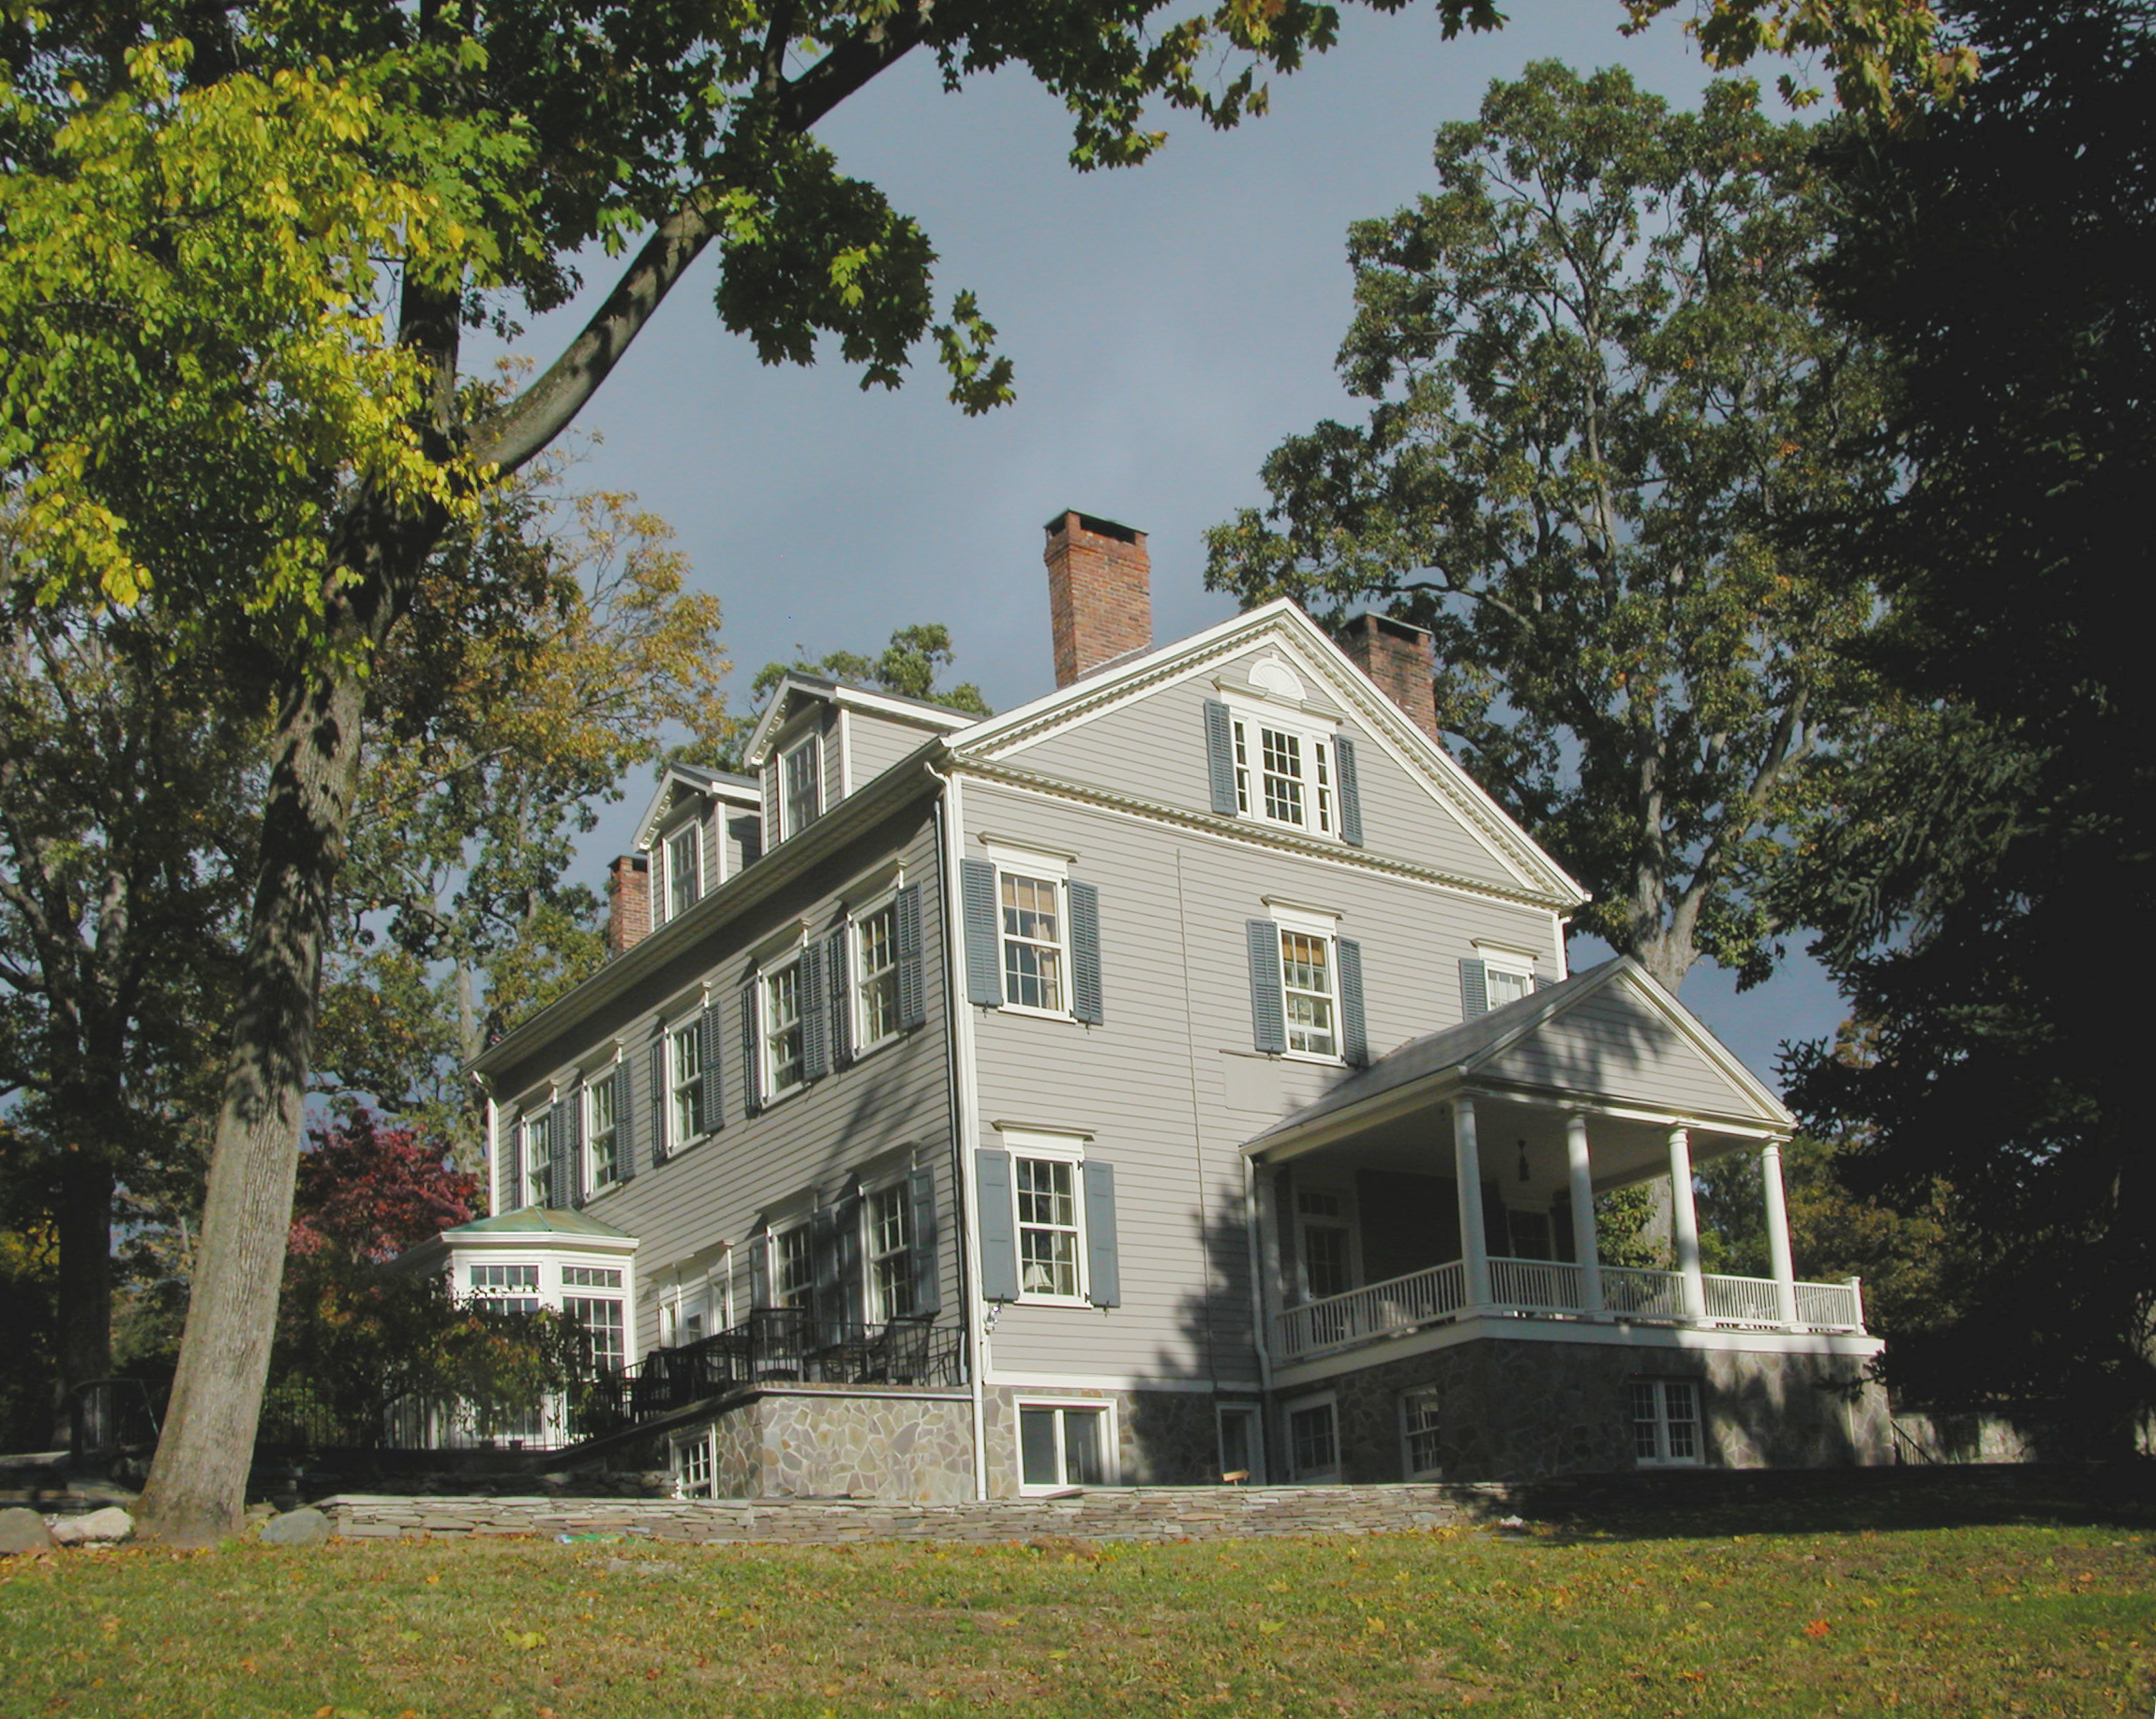 Chrystie House Bed and Breakfast